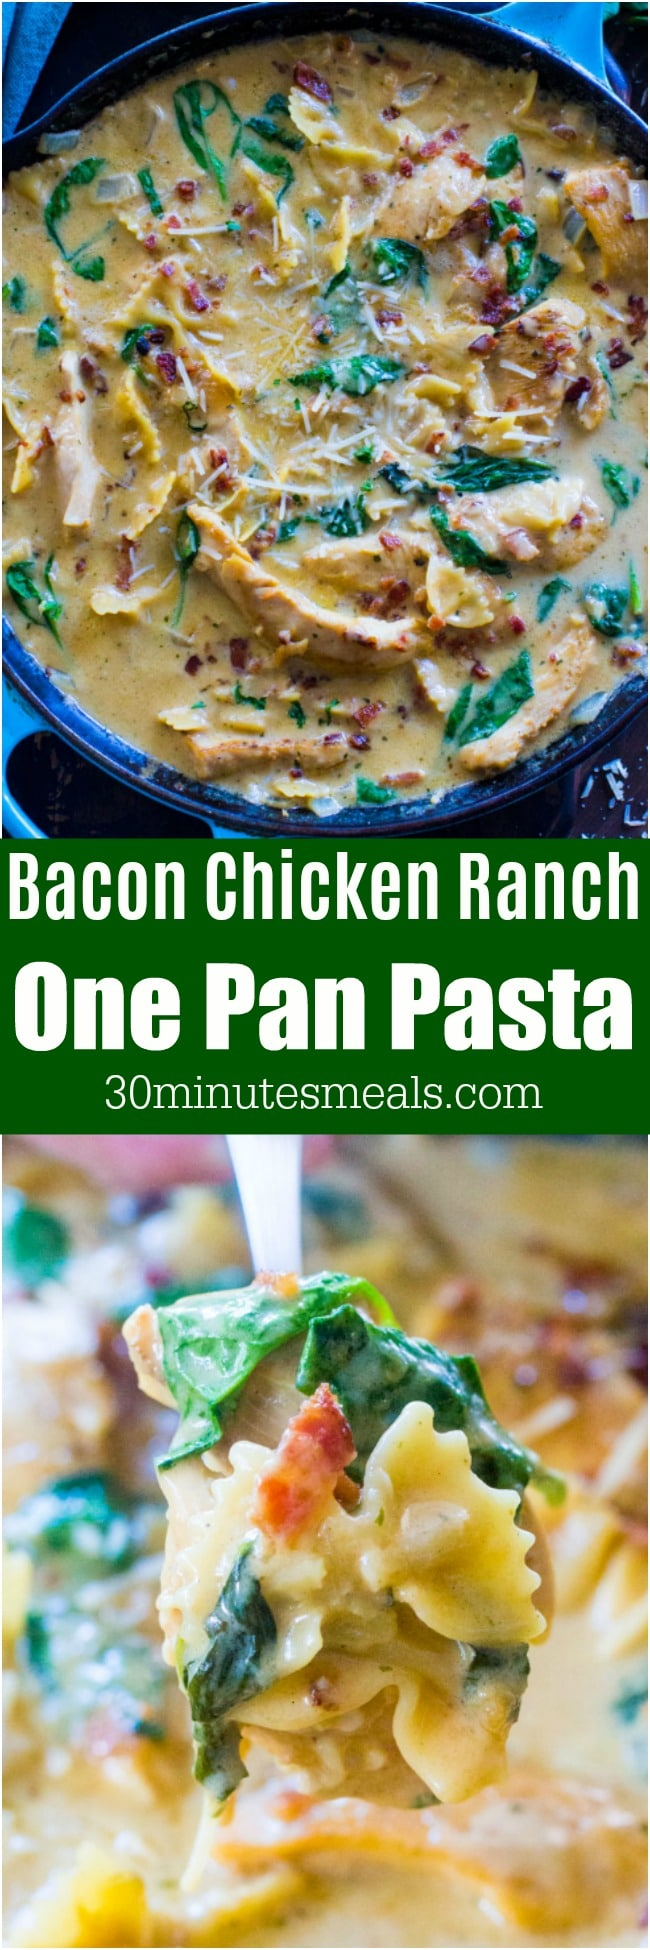 30 Minute Chicken Bacon Ranch Pasta made in one pan, is the perfect, creamy and comforting weeknight meal for busy families.